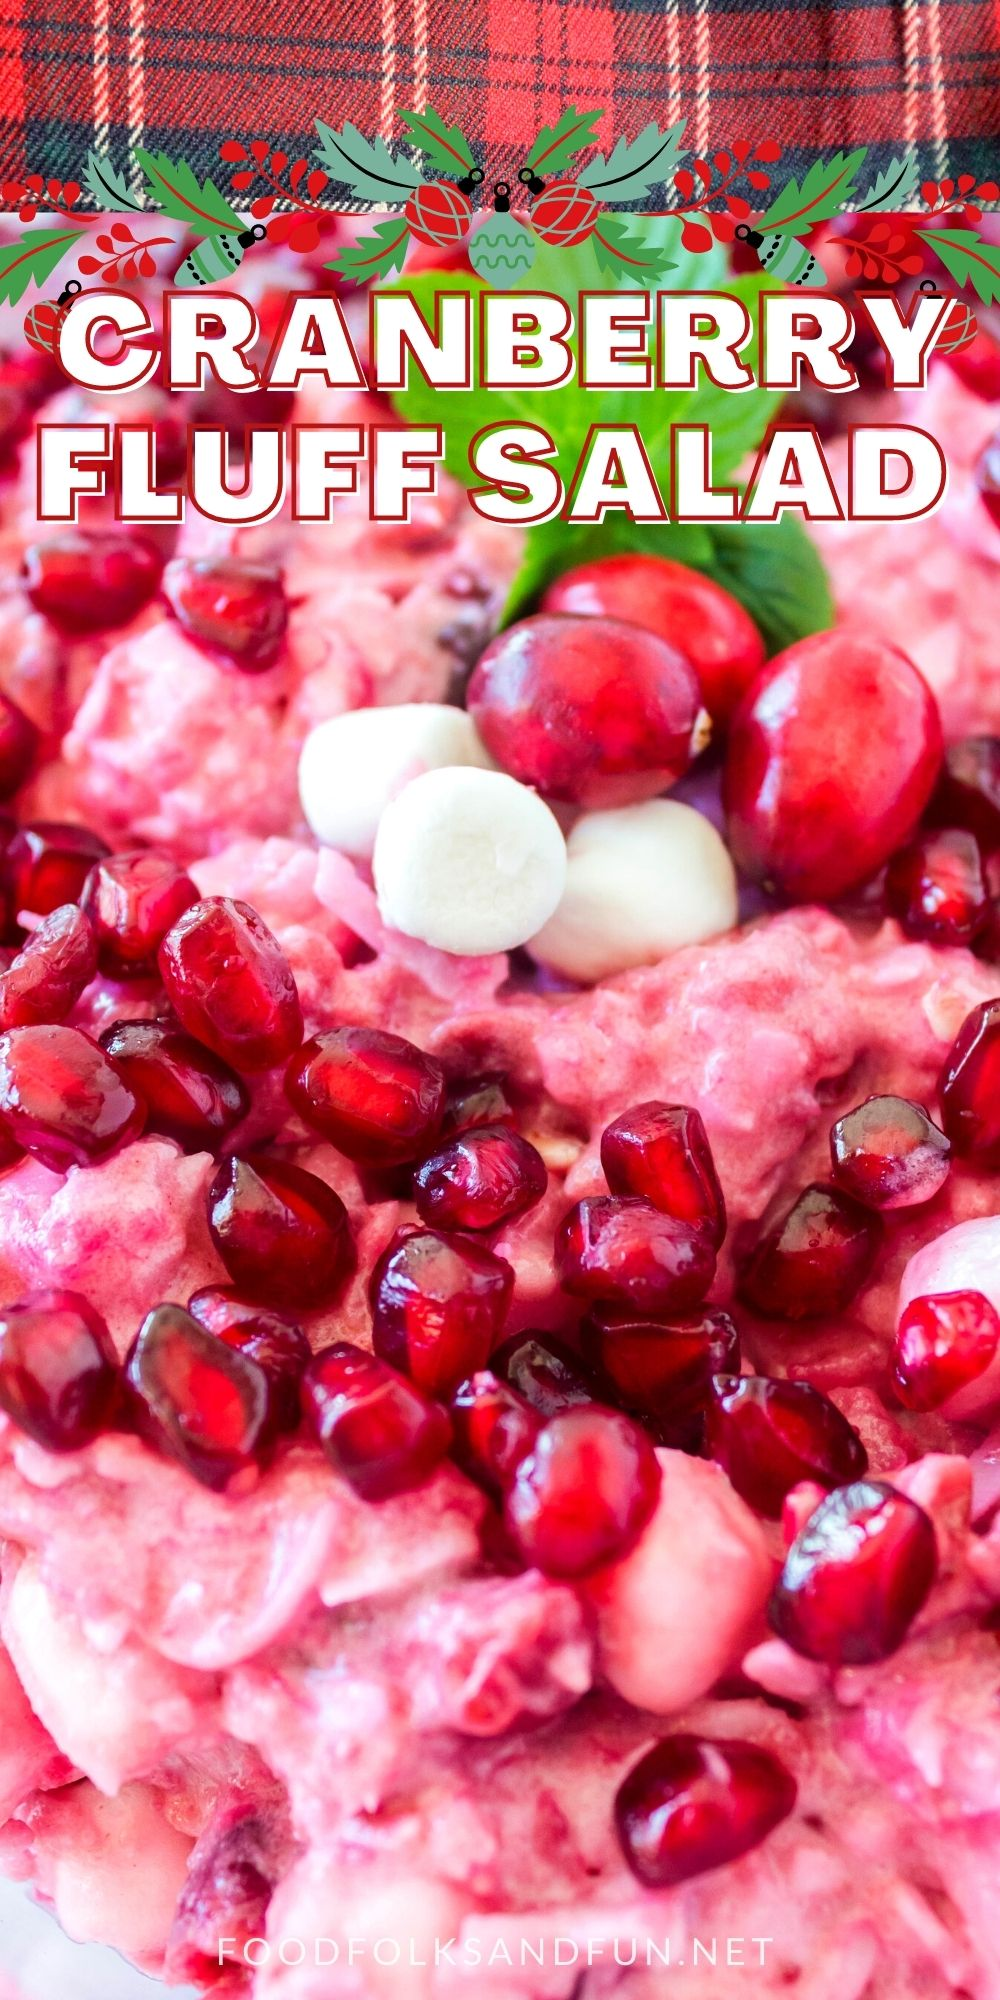 This Cranberry Fluff Salad is simply the best. It's loaded with tart cranberries, whipped cream, pineapple, coconut, marshmallows, and pomegranate seeds. via @foodfolksandfun